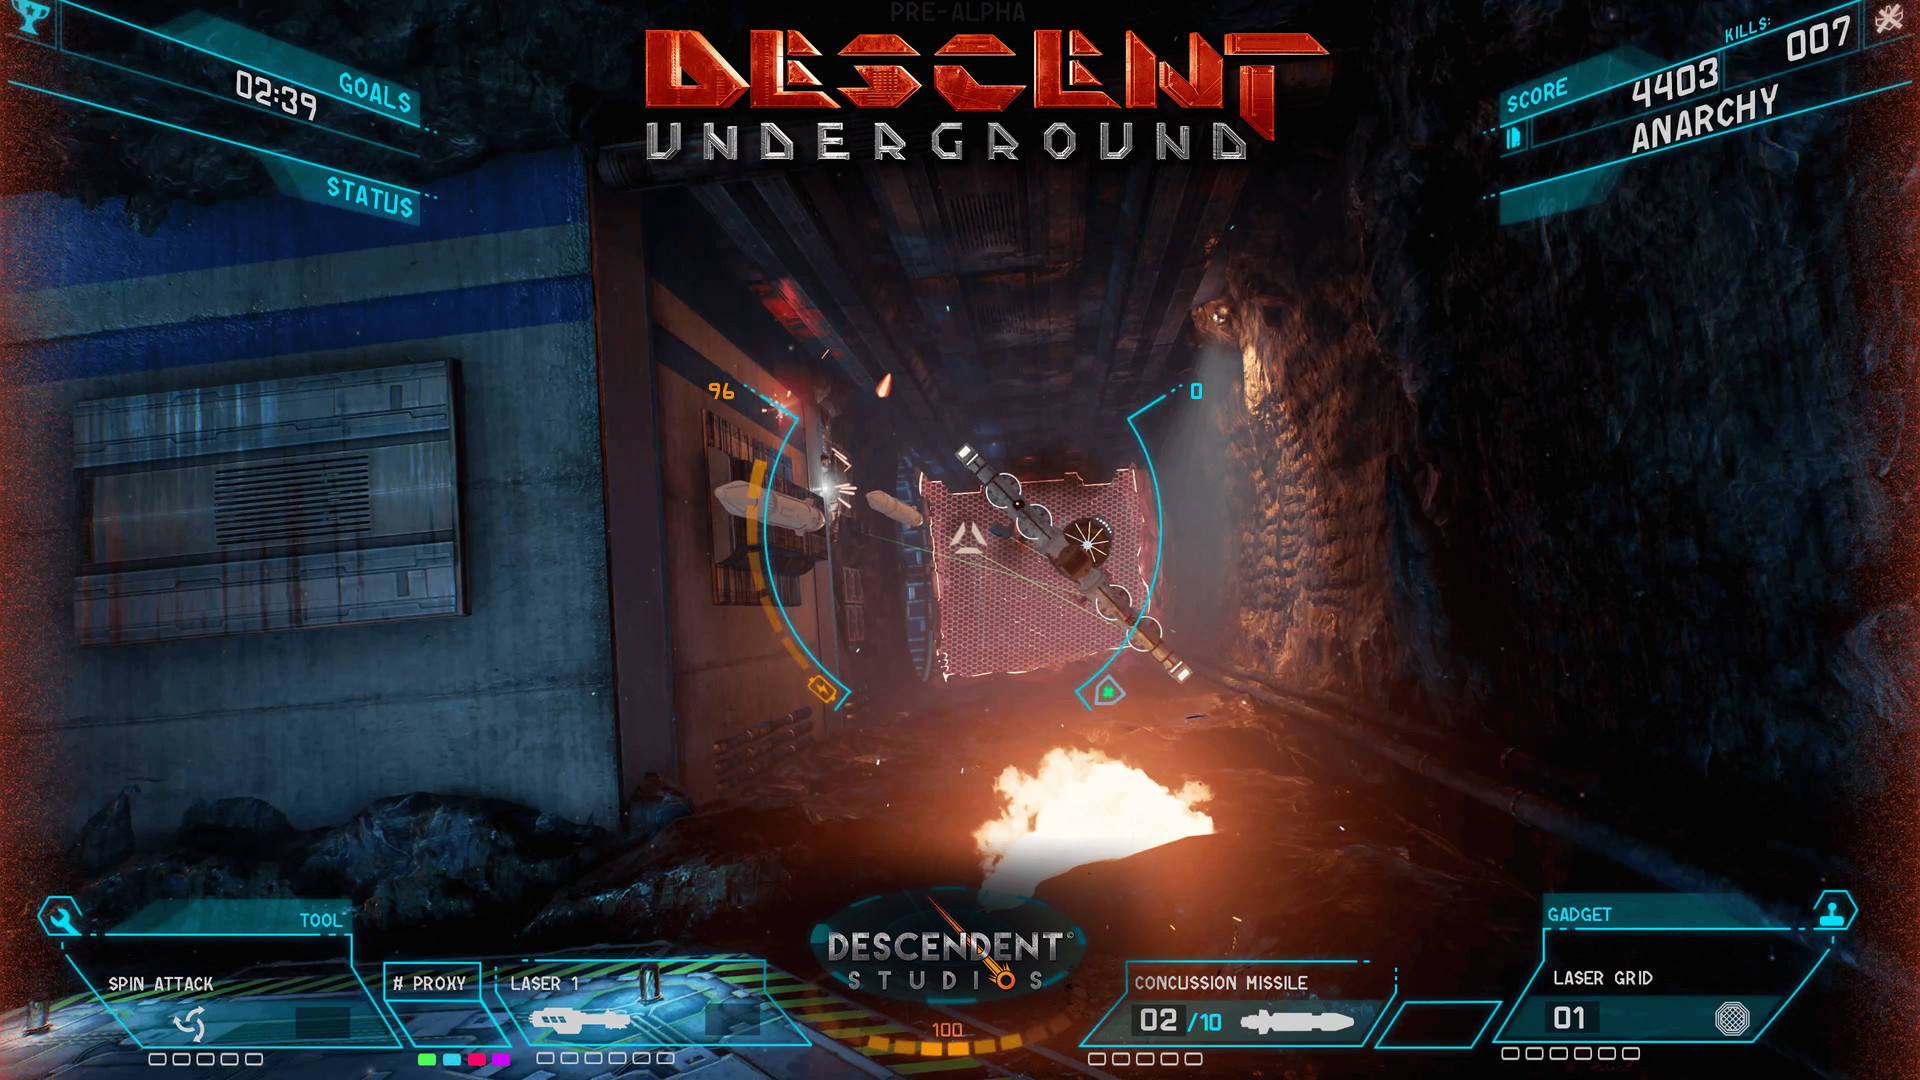 Descent: Underground Steam Key Region free